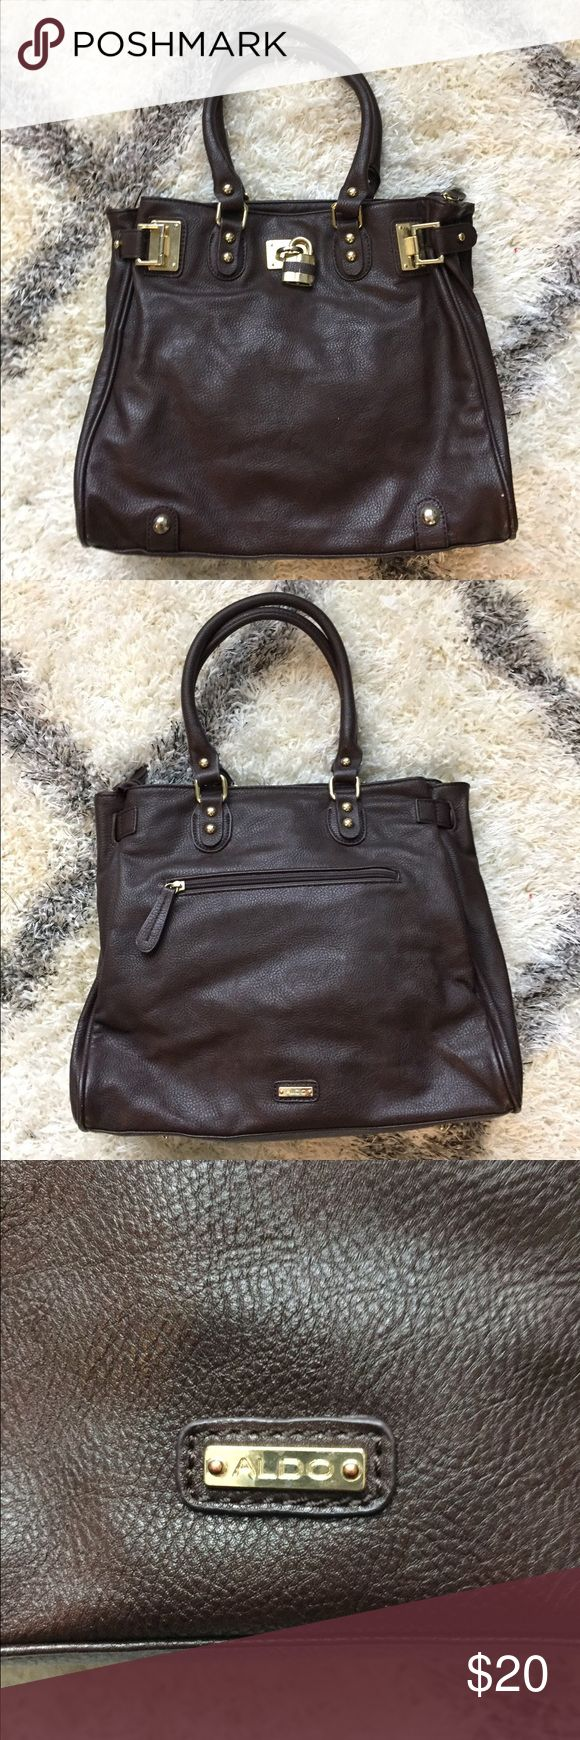 Aldo dark brown faux leather tote bag Large tote with gold accents Aldo Bags Totes